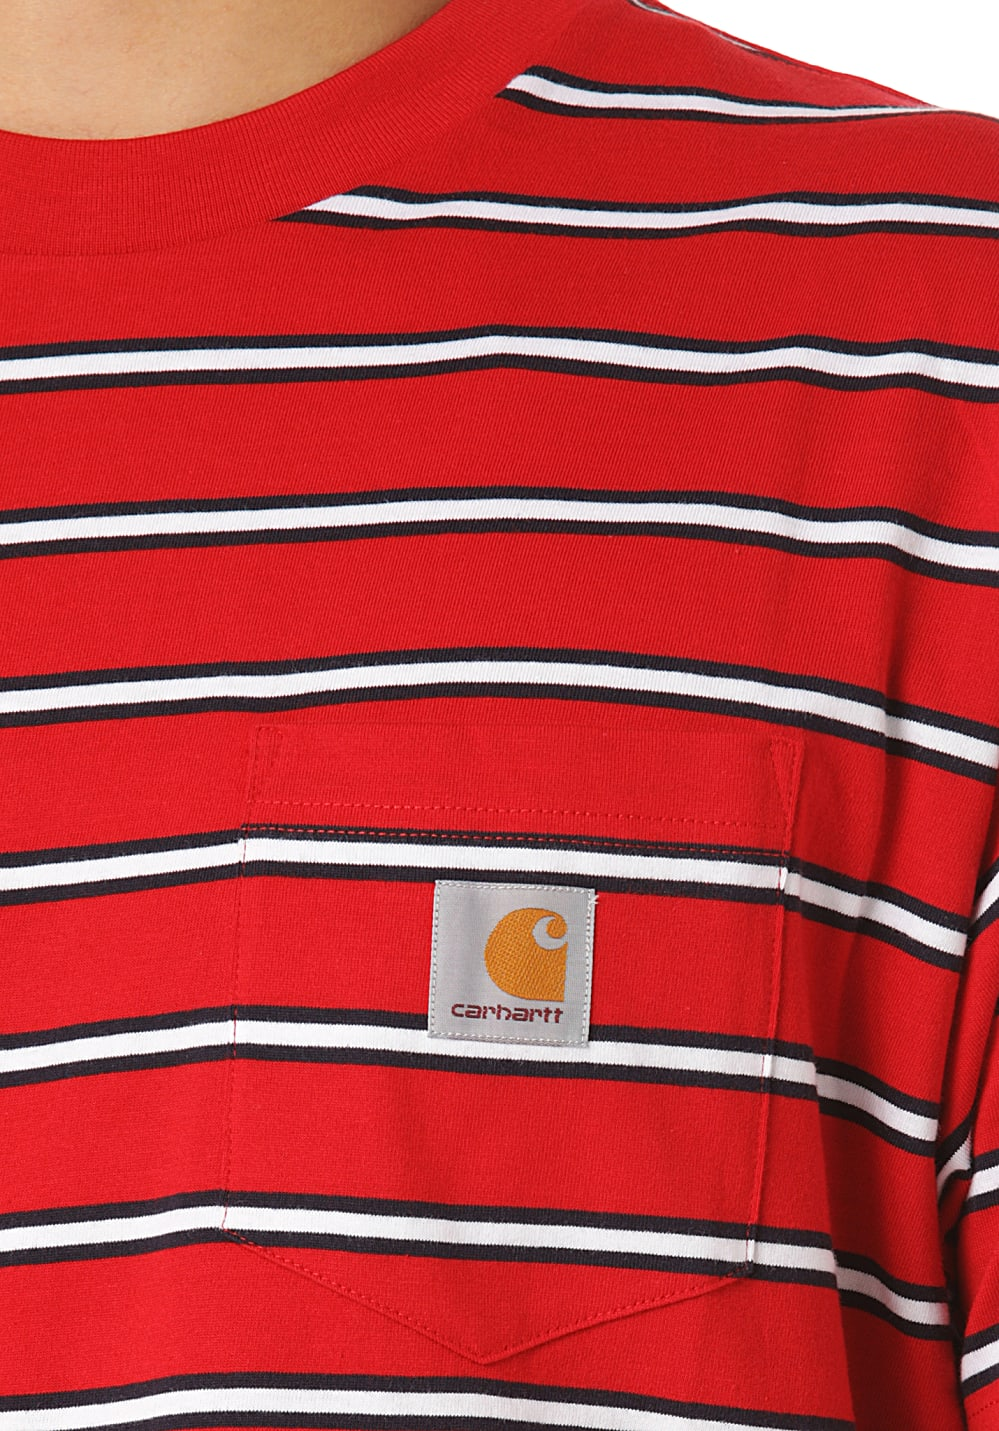 d9555ef60956 ... carhartt WIP Houston Pocket - T-Shirt for Men - Red. Back to Overview.  1  2  3. Previous. Next